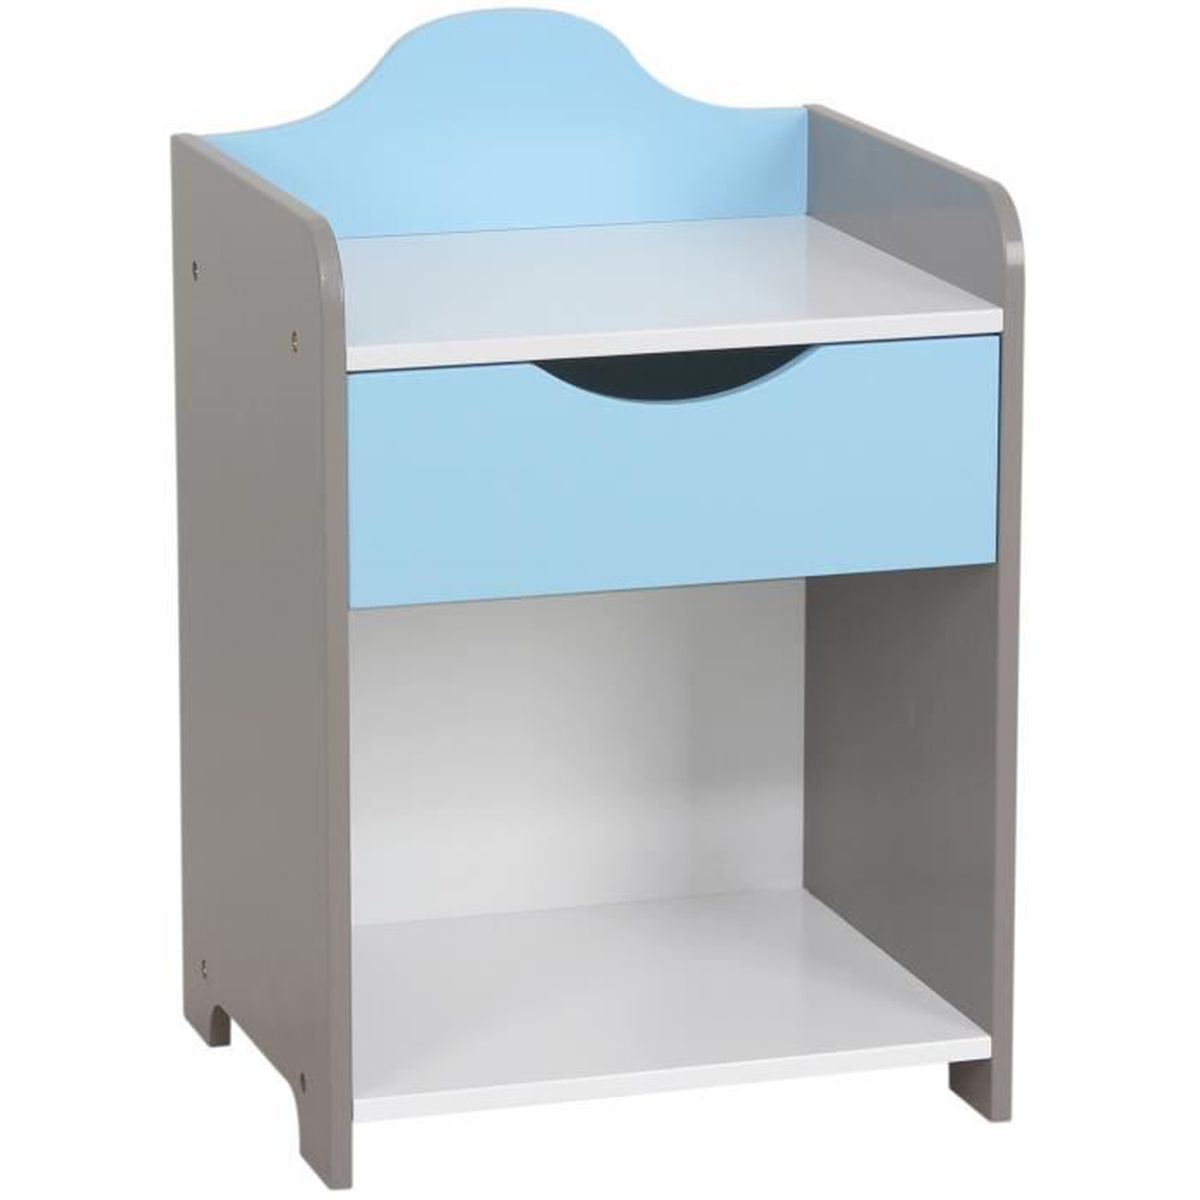 Table de chevet enfant en bois mod le scandinave bleu for Modele table de nuit